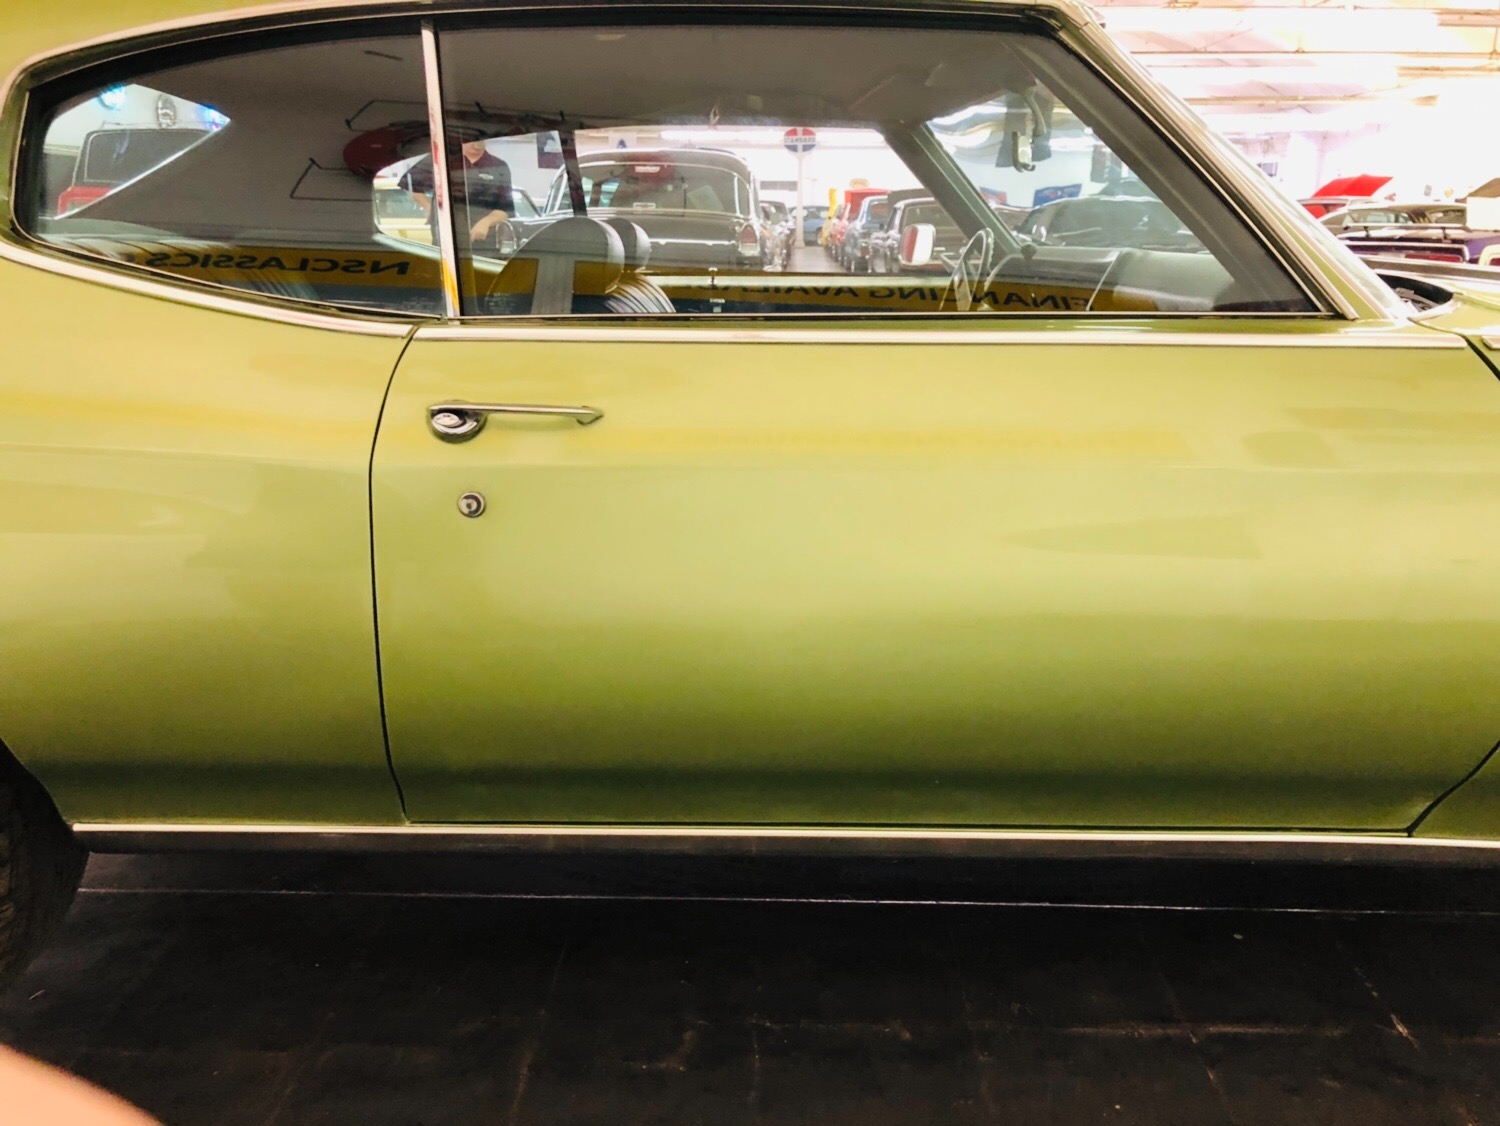 Used 1970 Chevrolet Chevelle -MALIBU V8 SOUTHERN TENNESSEE CLASSIC MUSCLE CAR-SEE VIDEO | Mundelein, IL